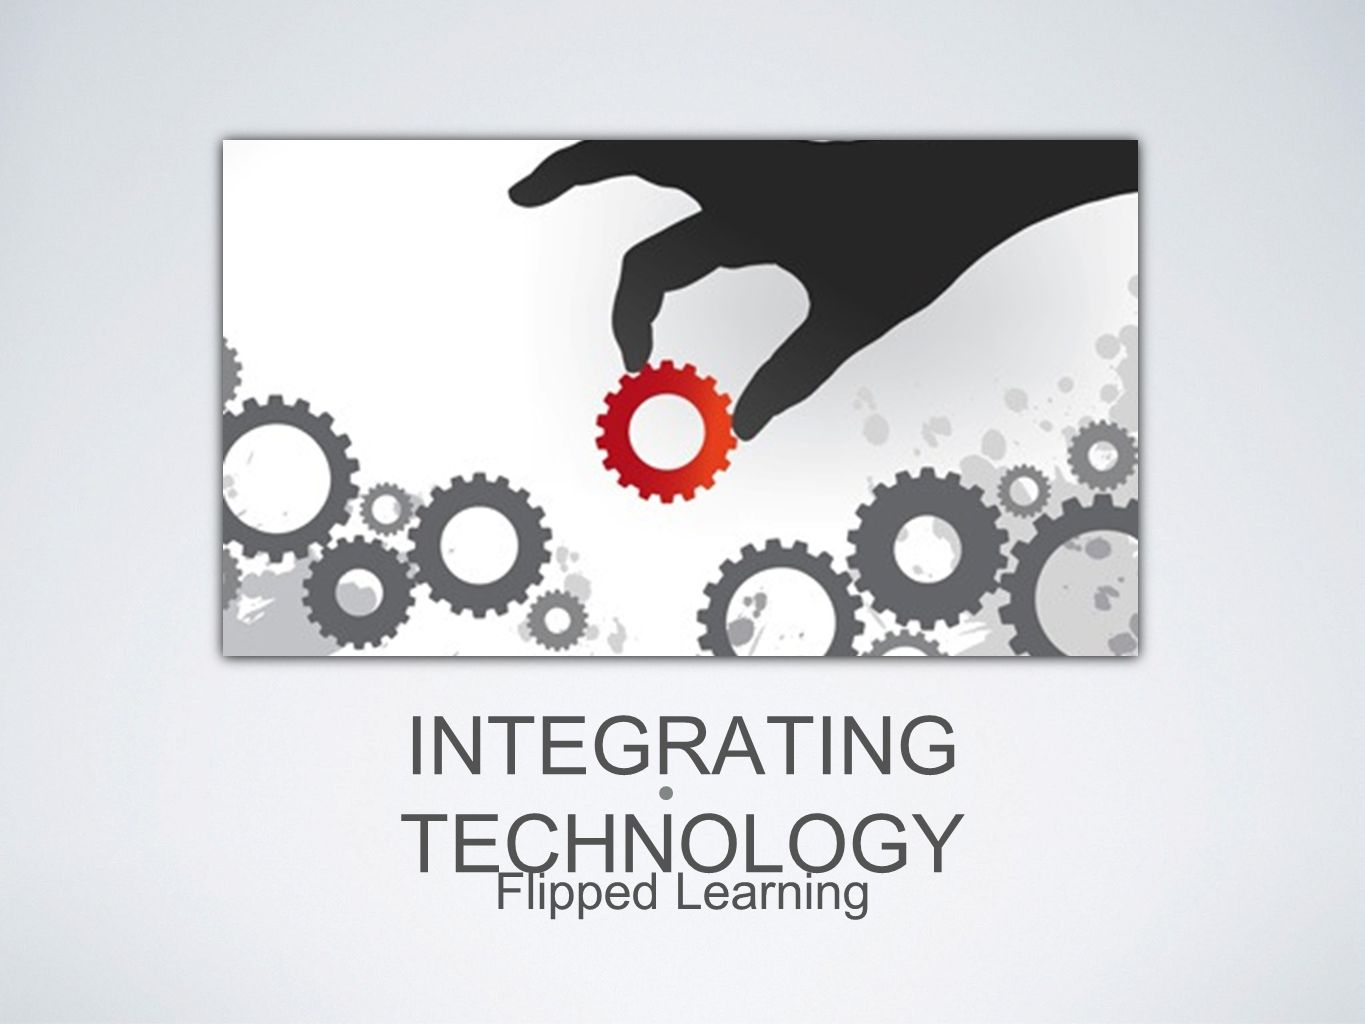 INTEGRATING TECHNOLOGY Flipped Learning